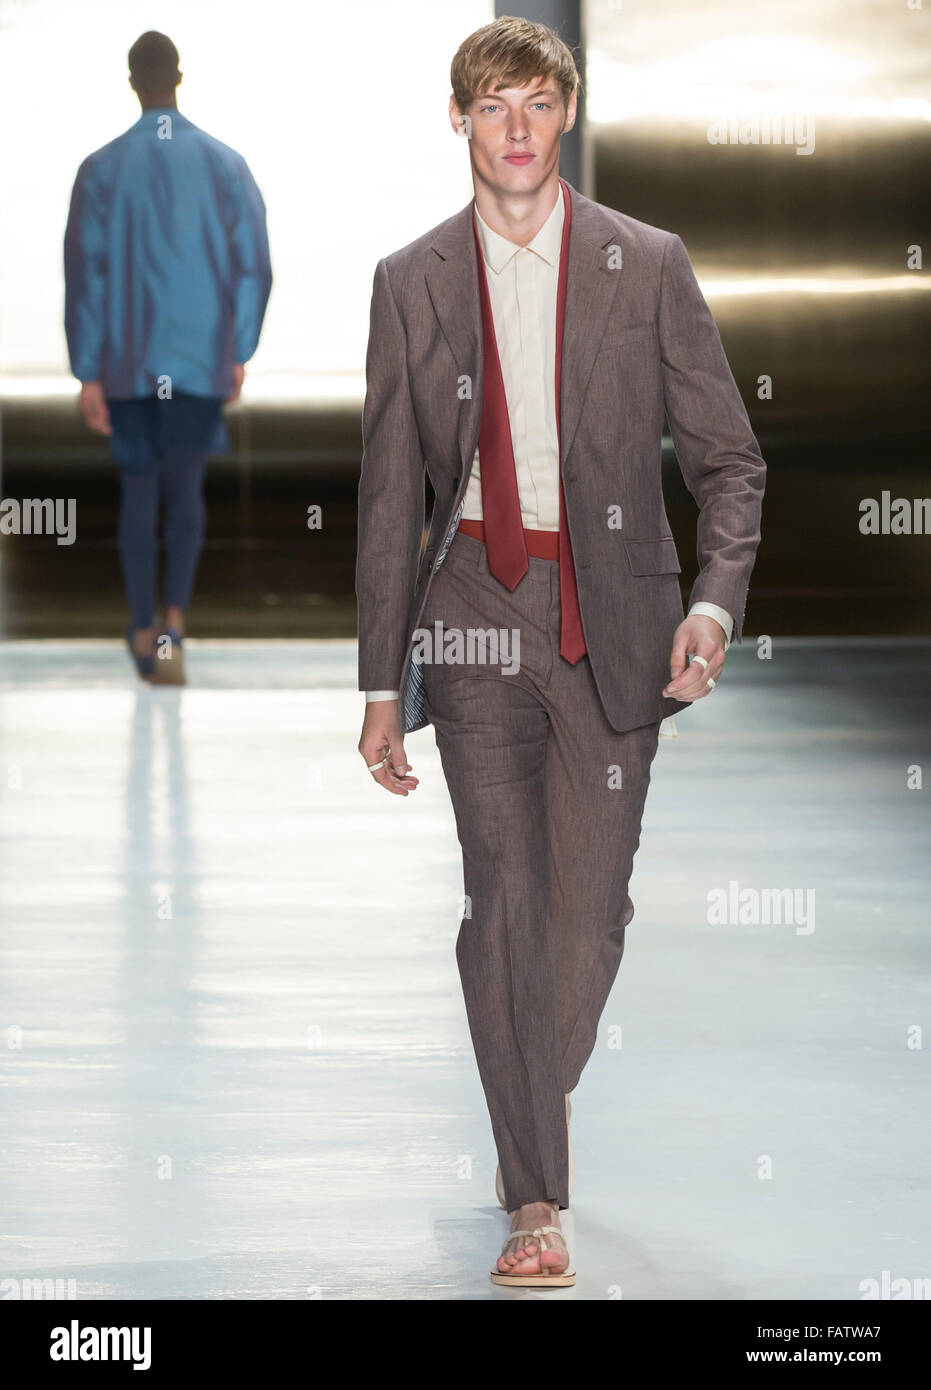 NEW YORK, NY - JULY 16, 2015: Roberto Sipos walks the runway during the Perry Ellis show at New York Fashion Week - Stock Image